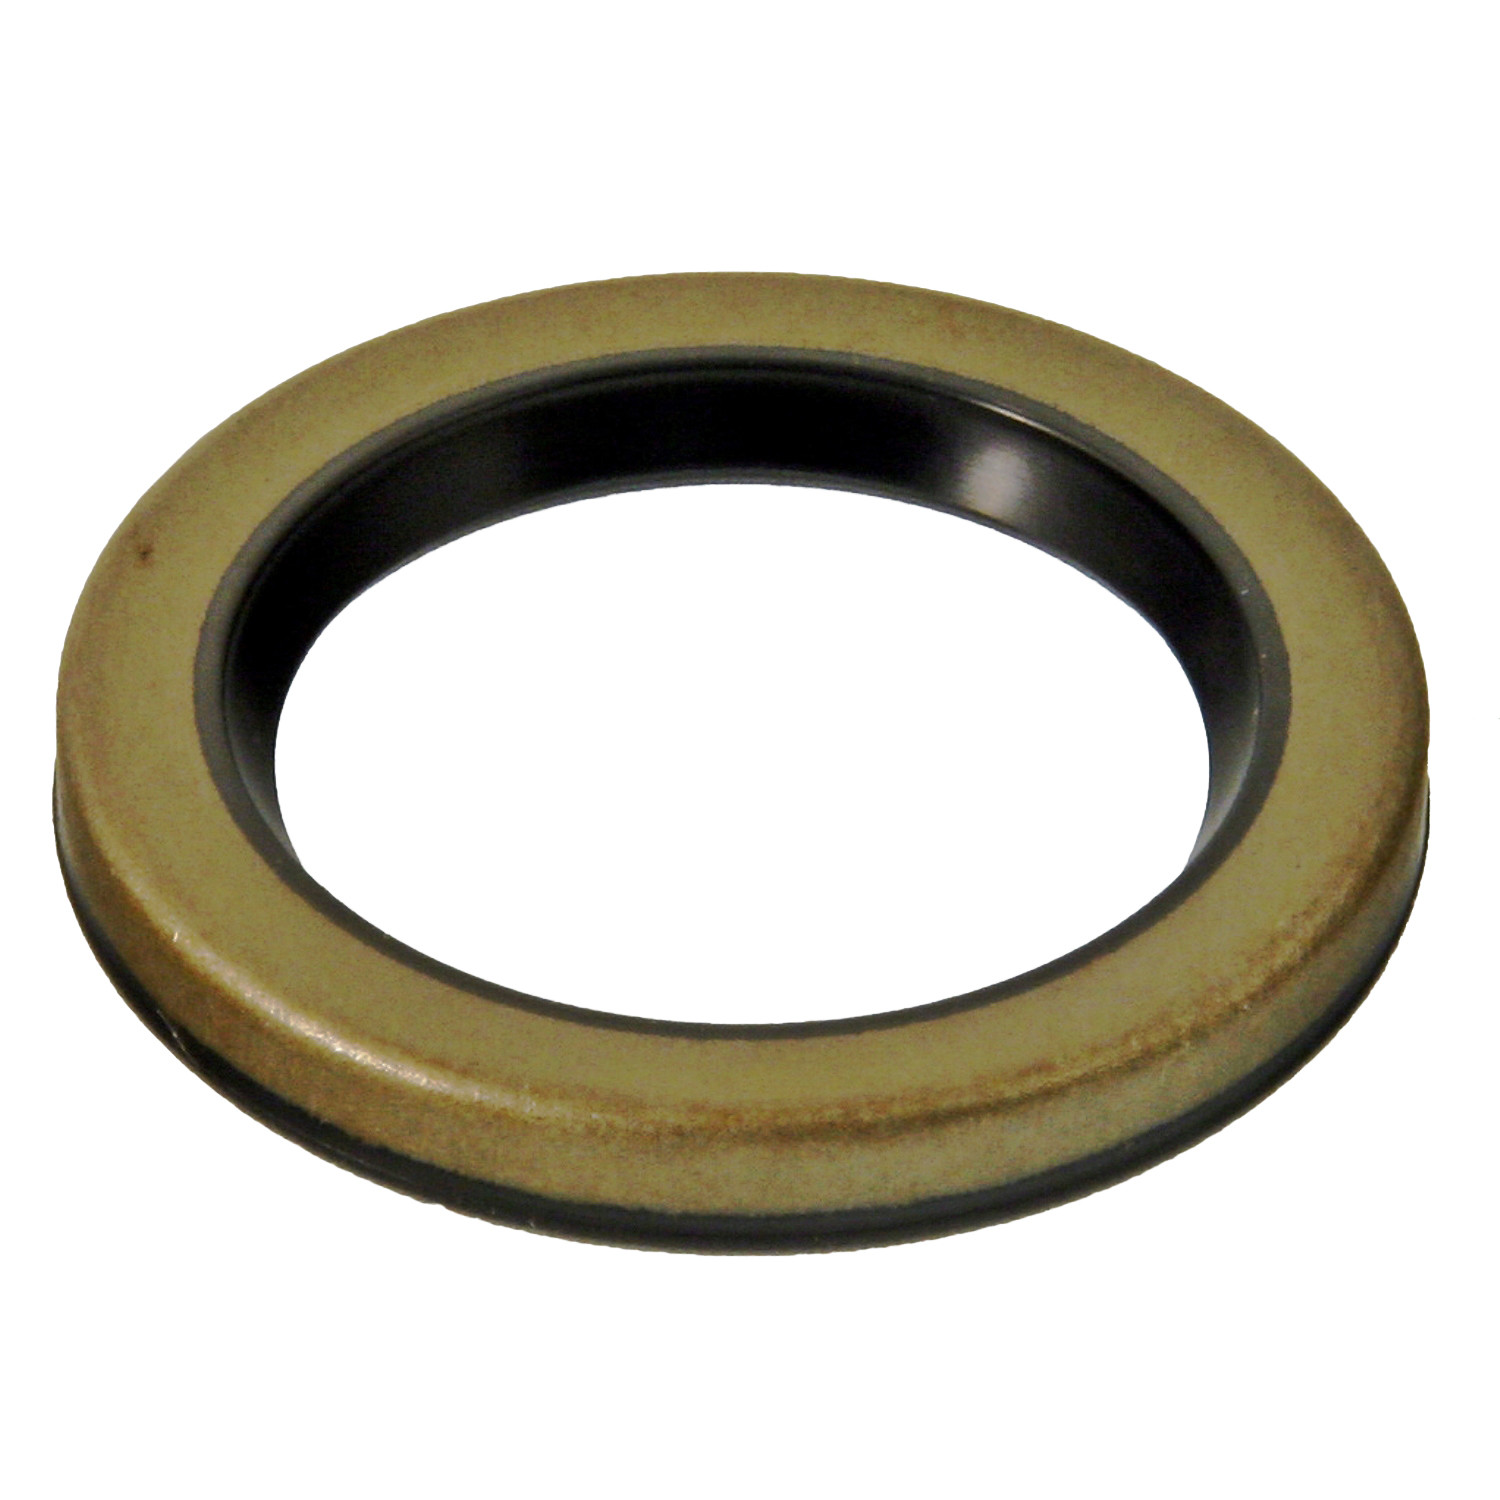 PRECISION AUTOMOTIVE INDUSTRIES - Manual Transmission Output Shaft Seal - PAU 1987